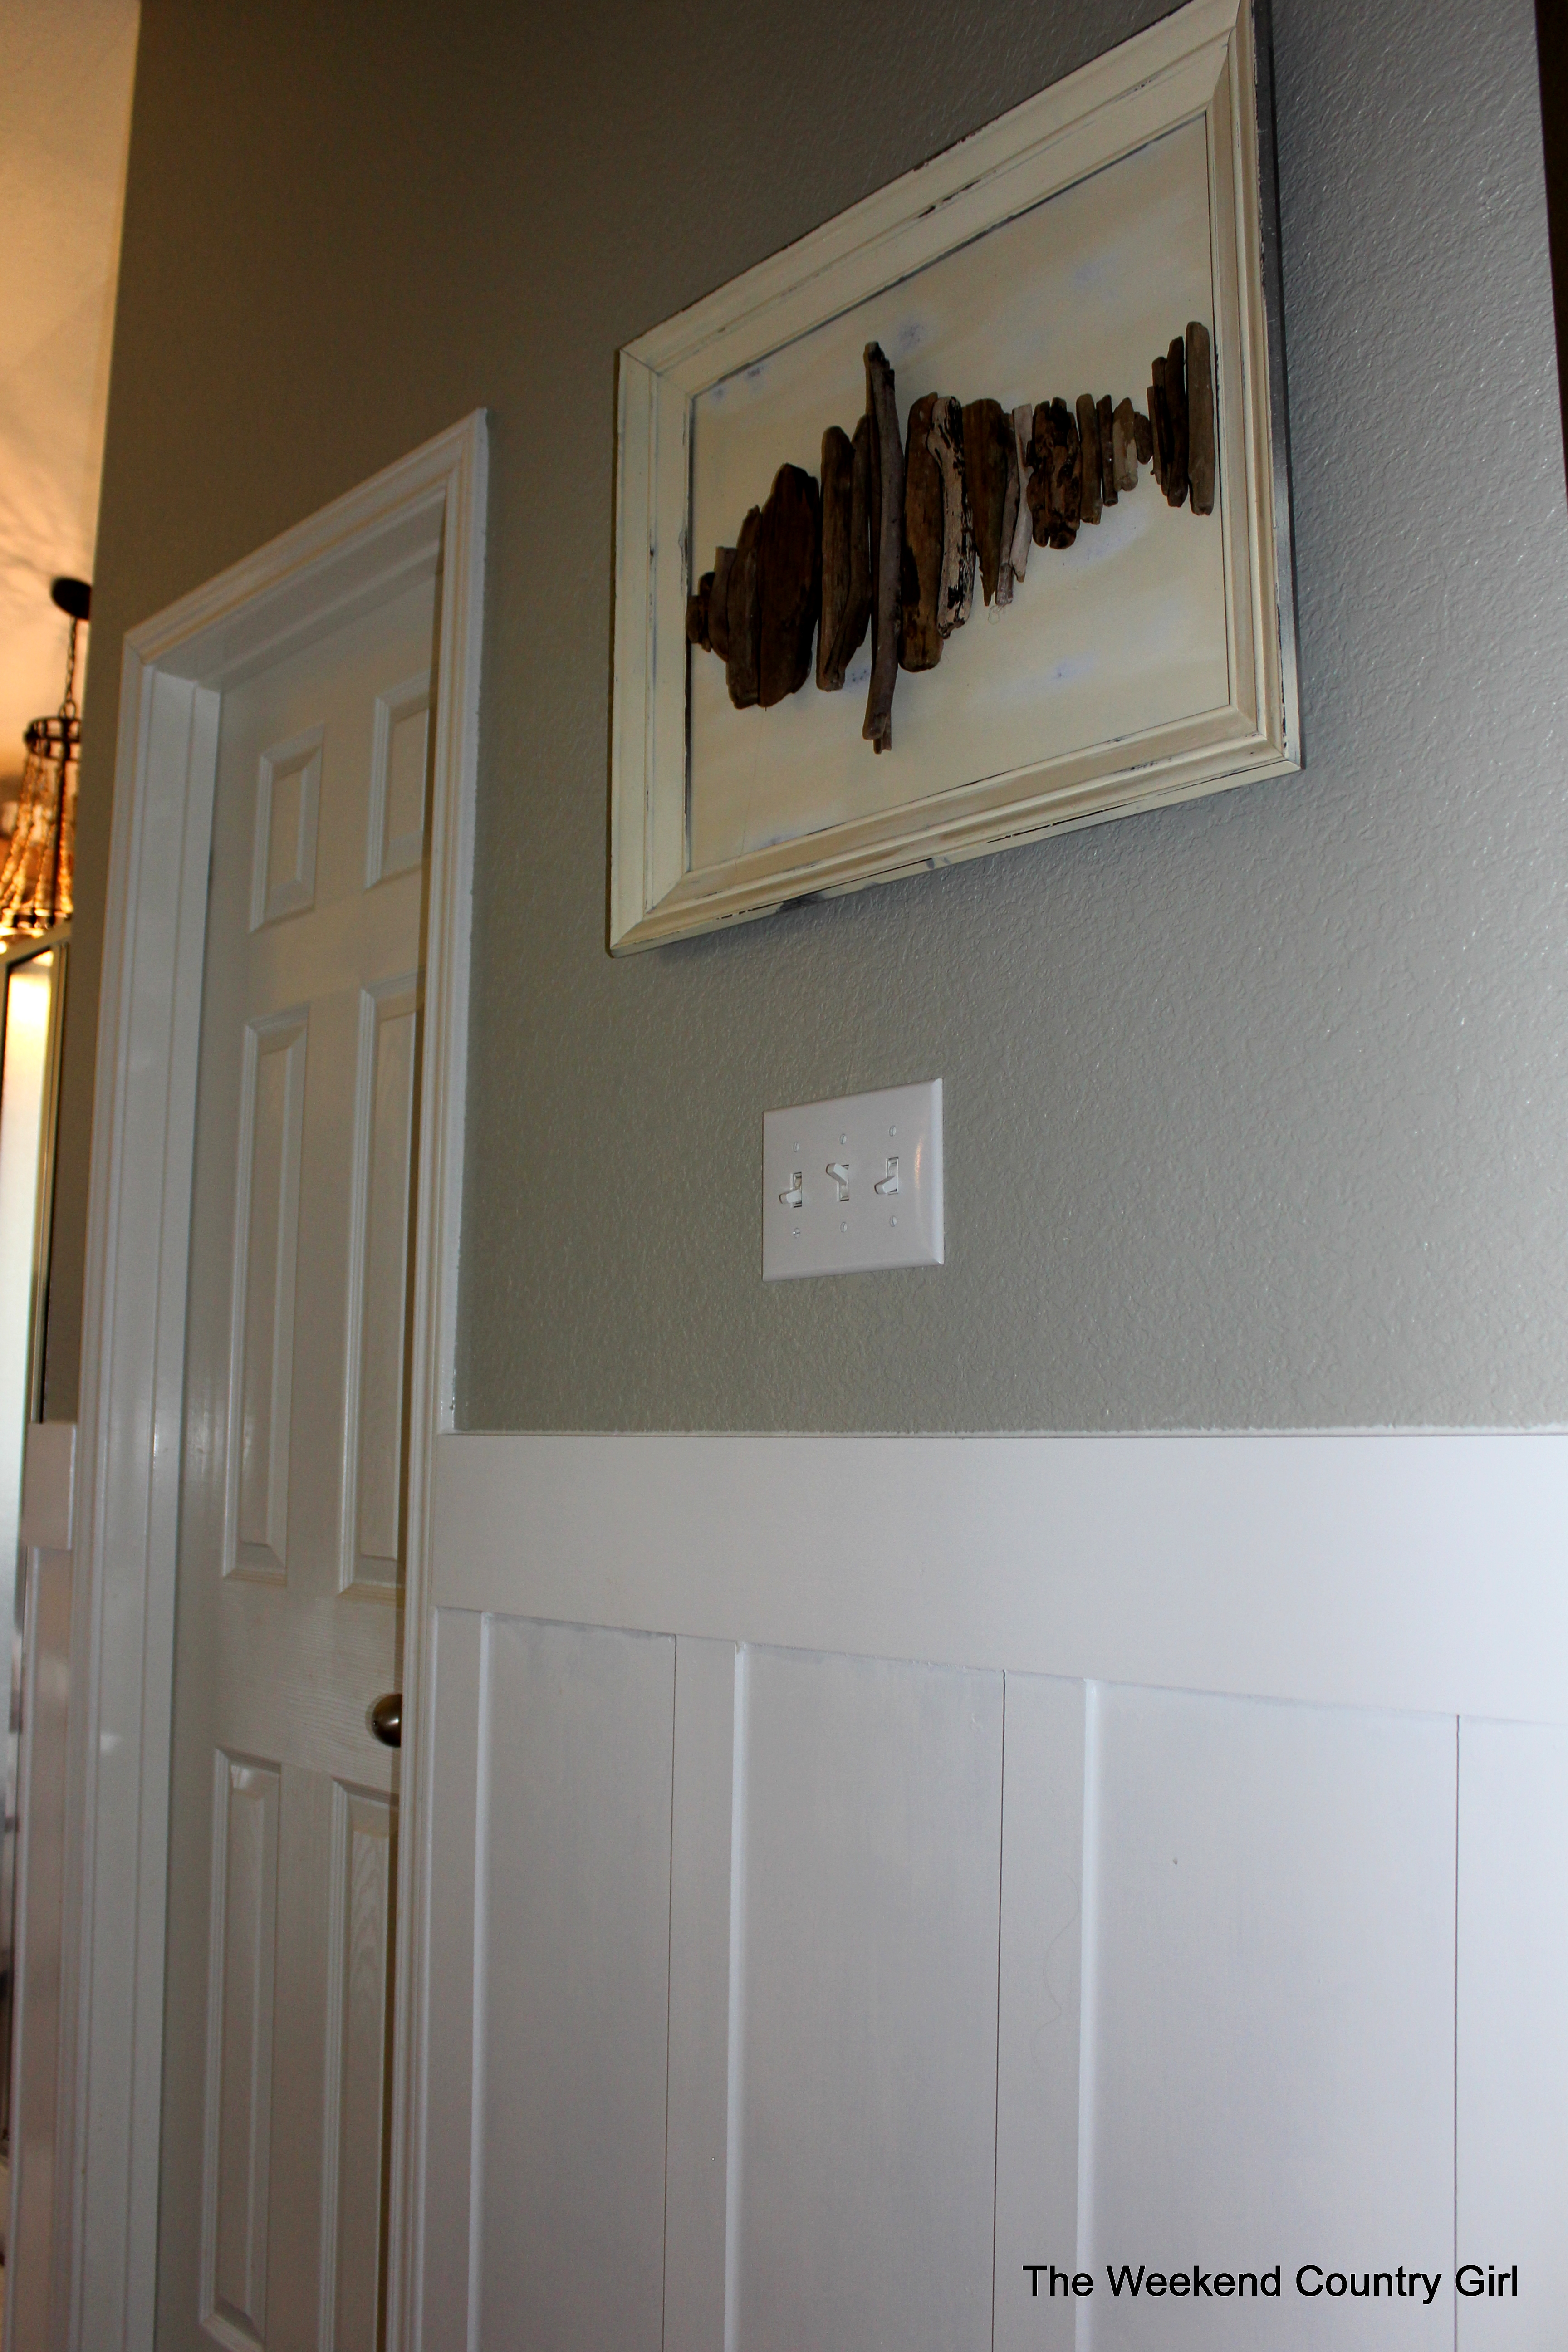 Bathroom Makeover With Board And Batten By The Weekend Country Girl Featured On Remodelaholic